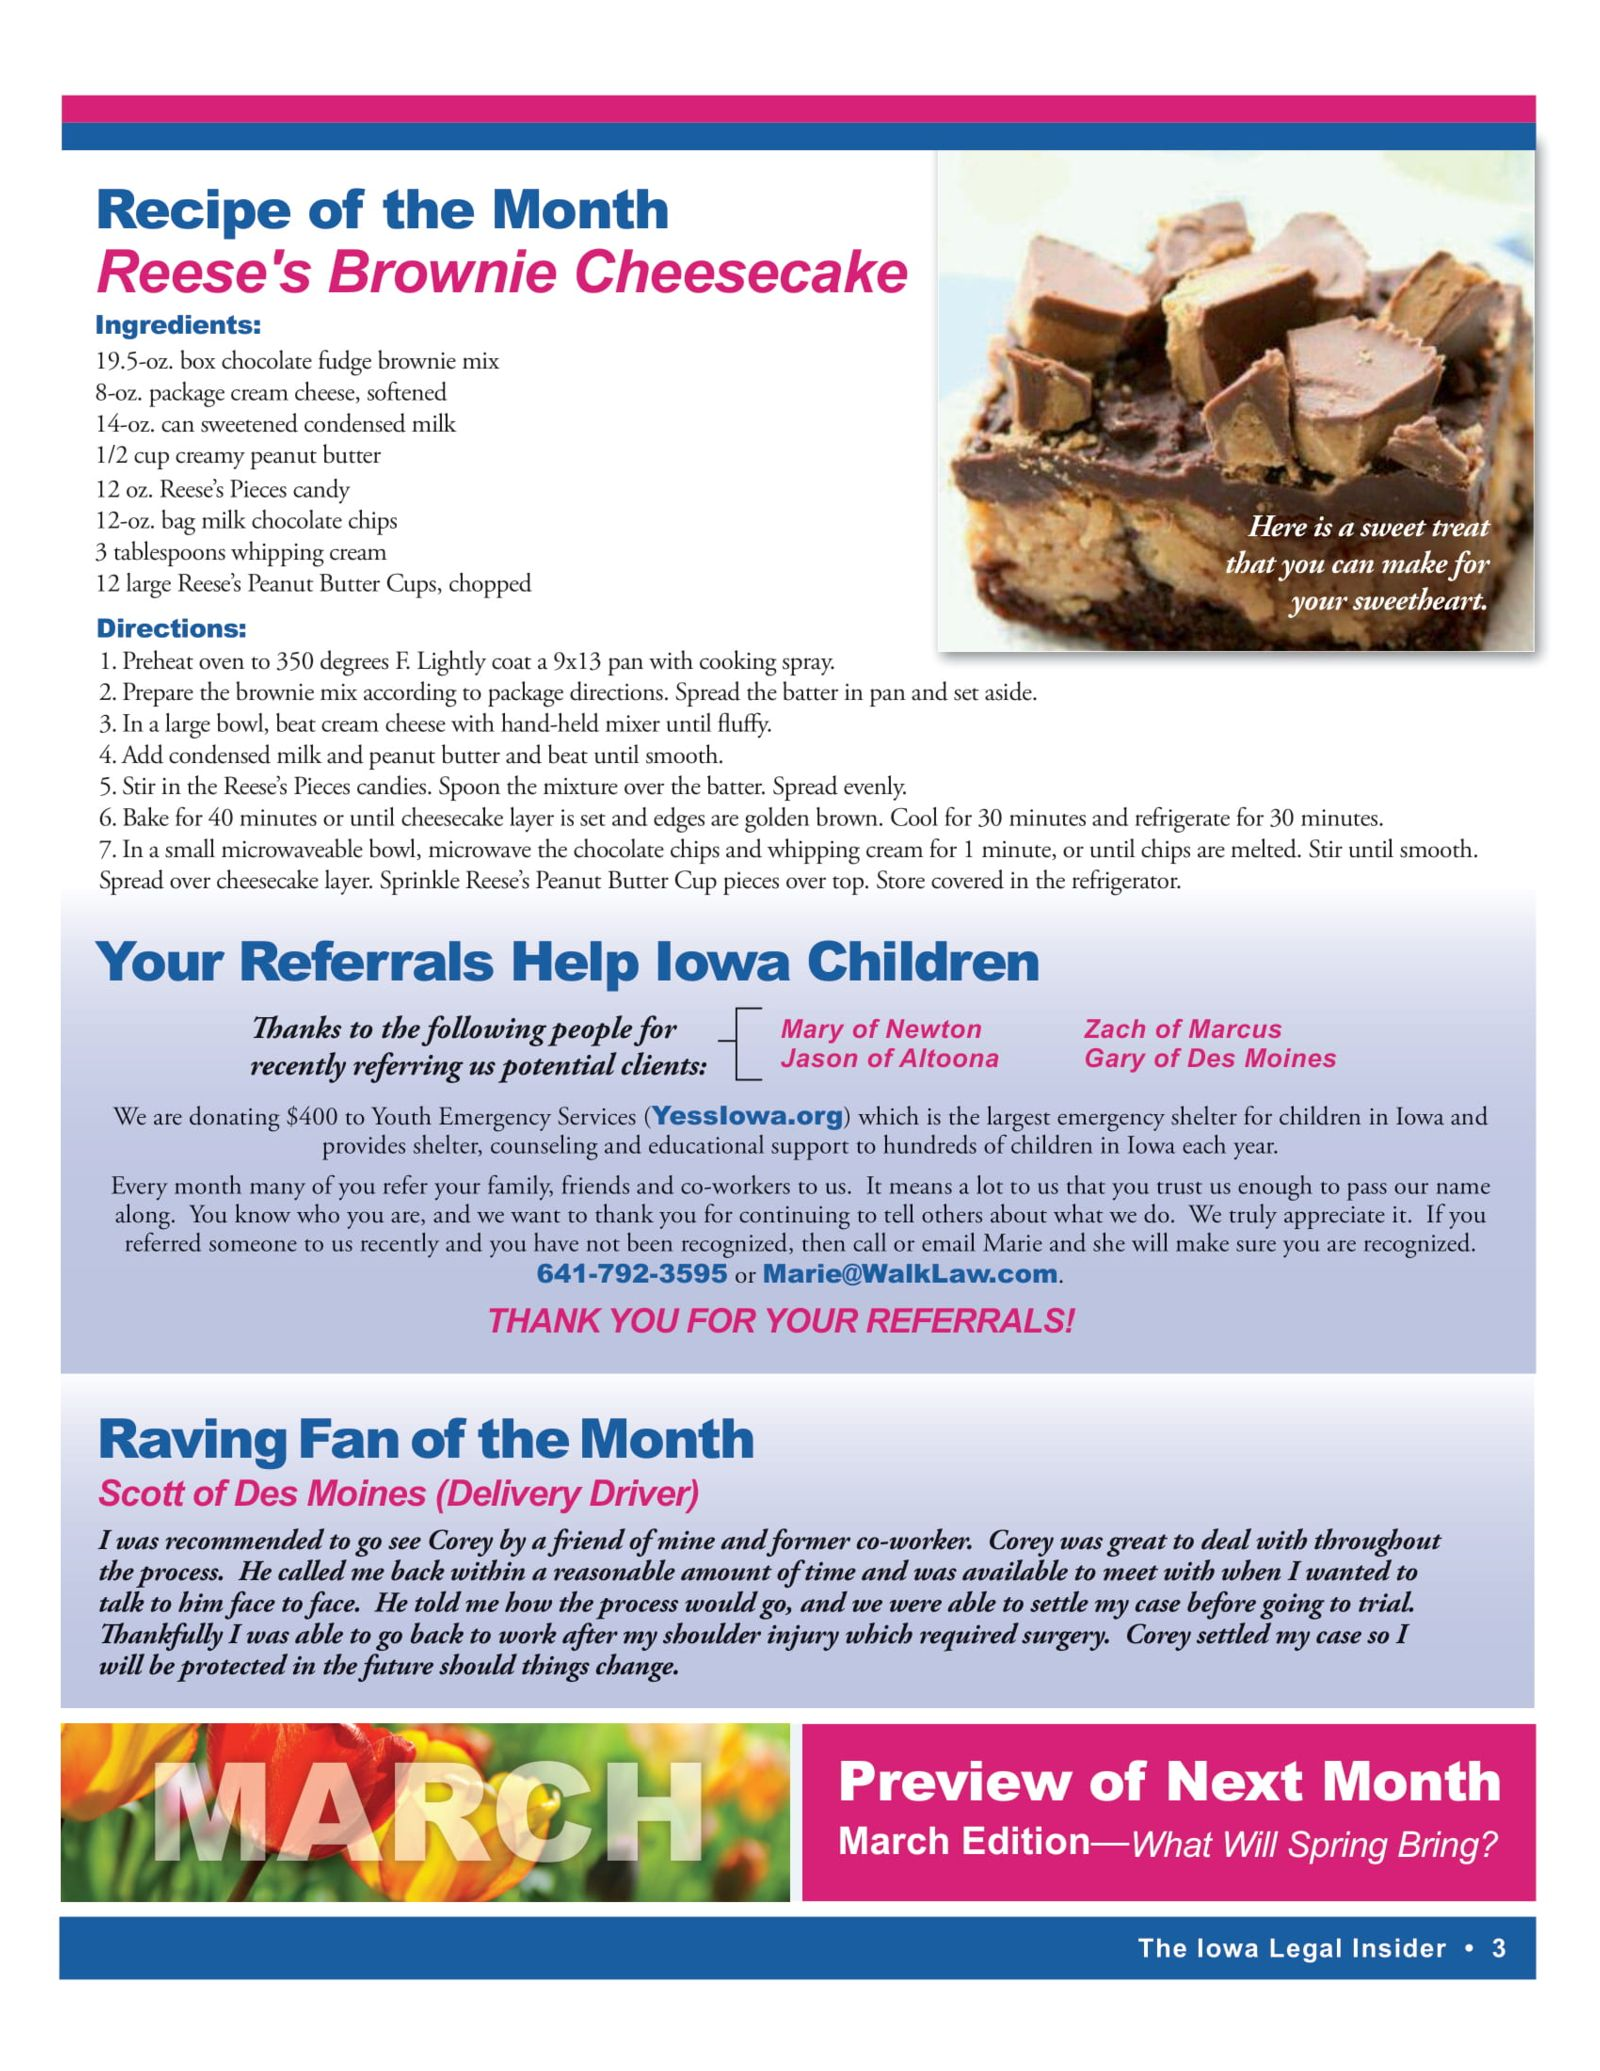 The iowa legal insider Reese's Brownie Cheesecake recipe